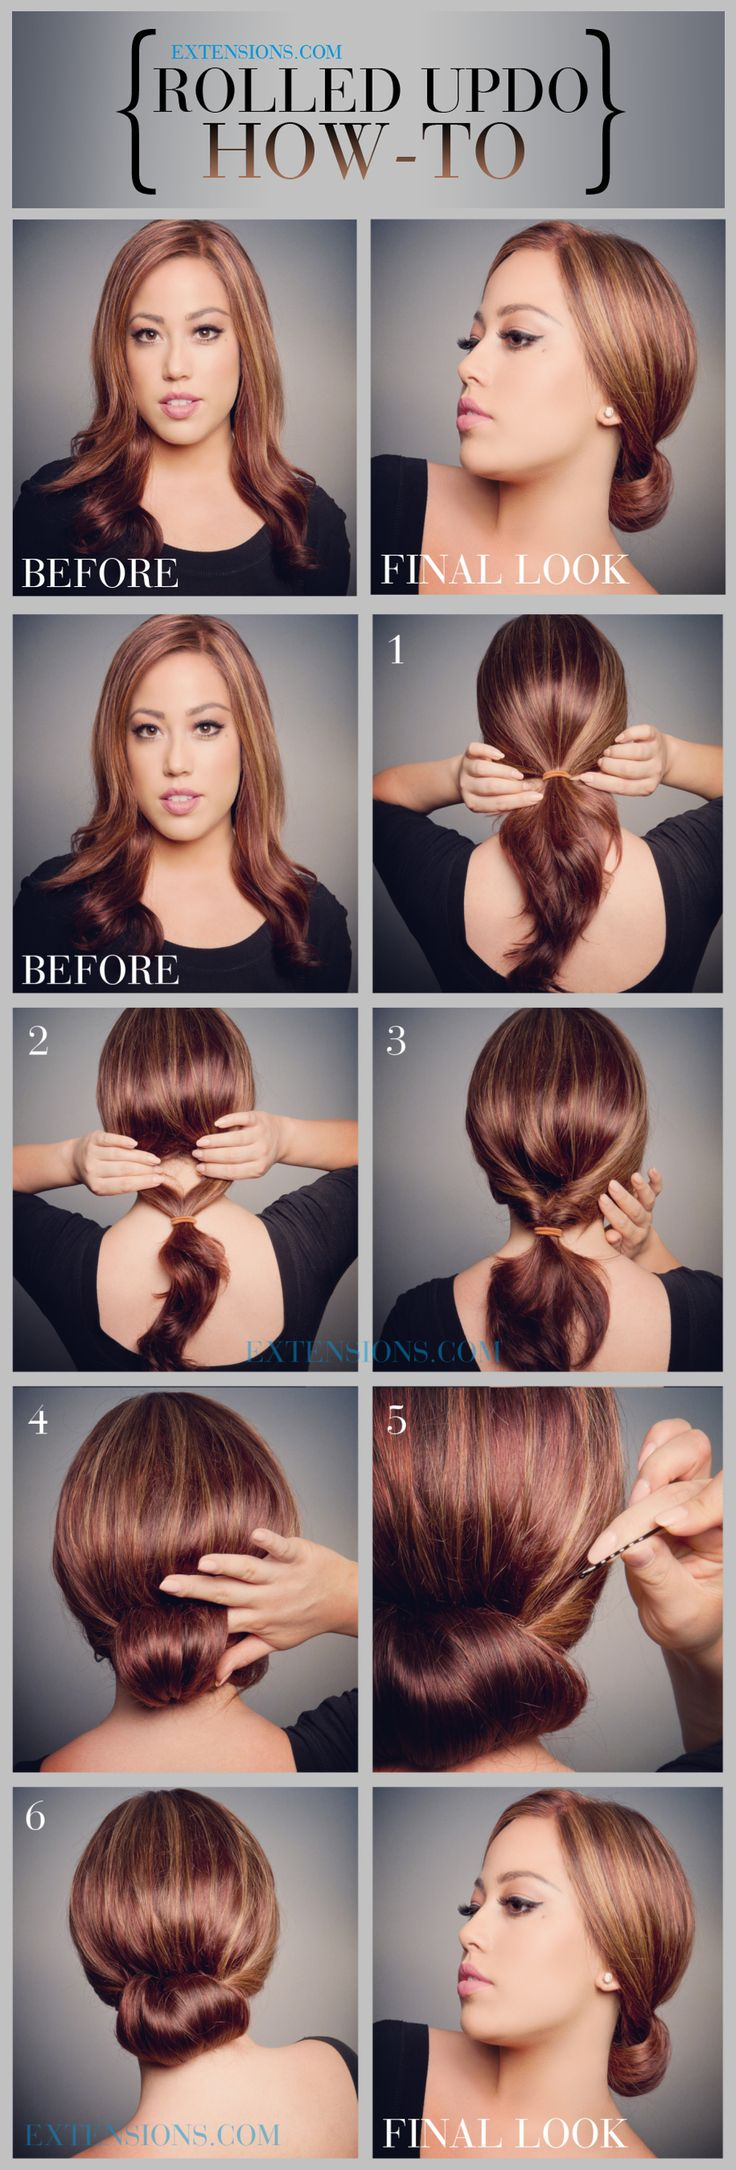 It's officially wedding season! Check out this super easy updo tutorial to look your best on any special day!